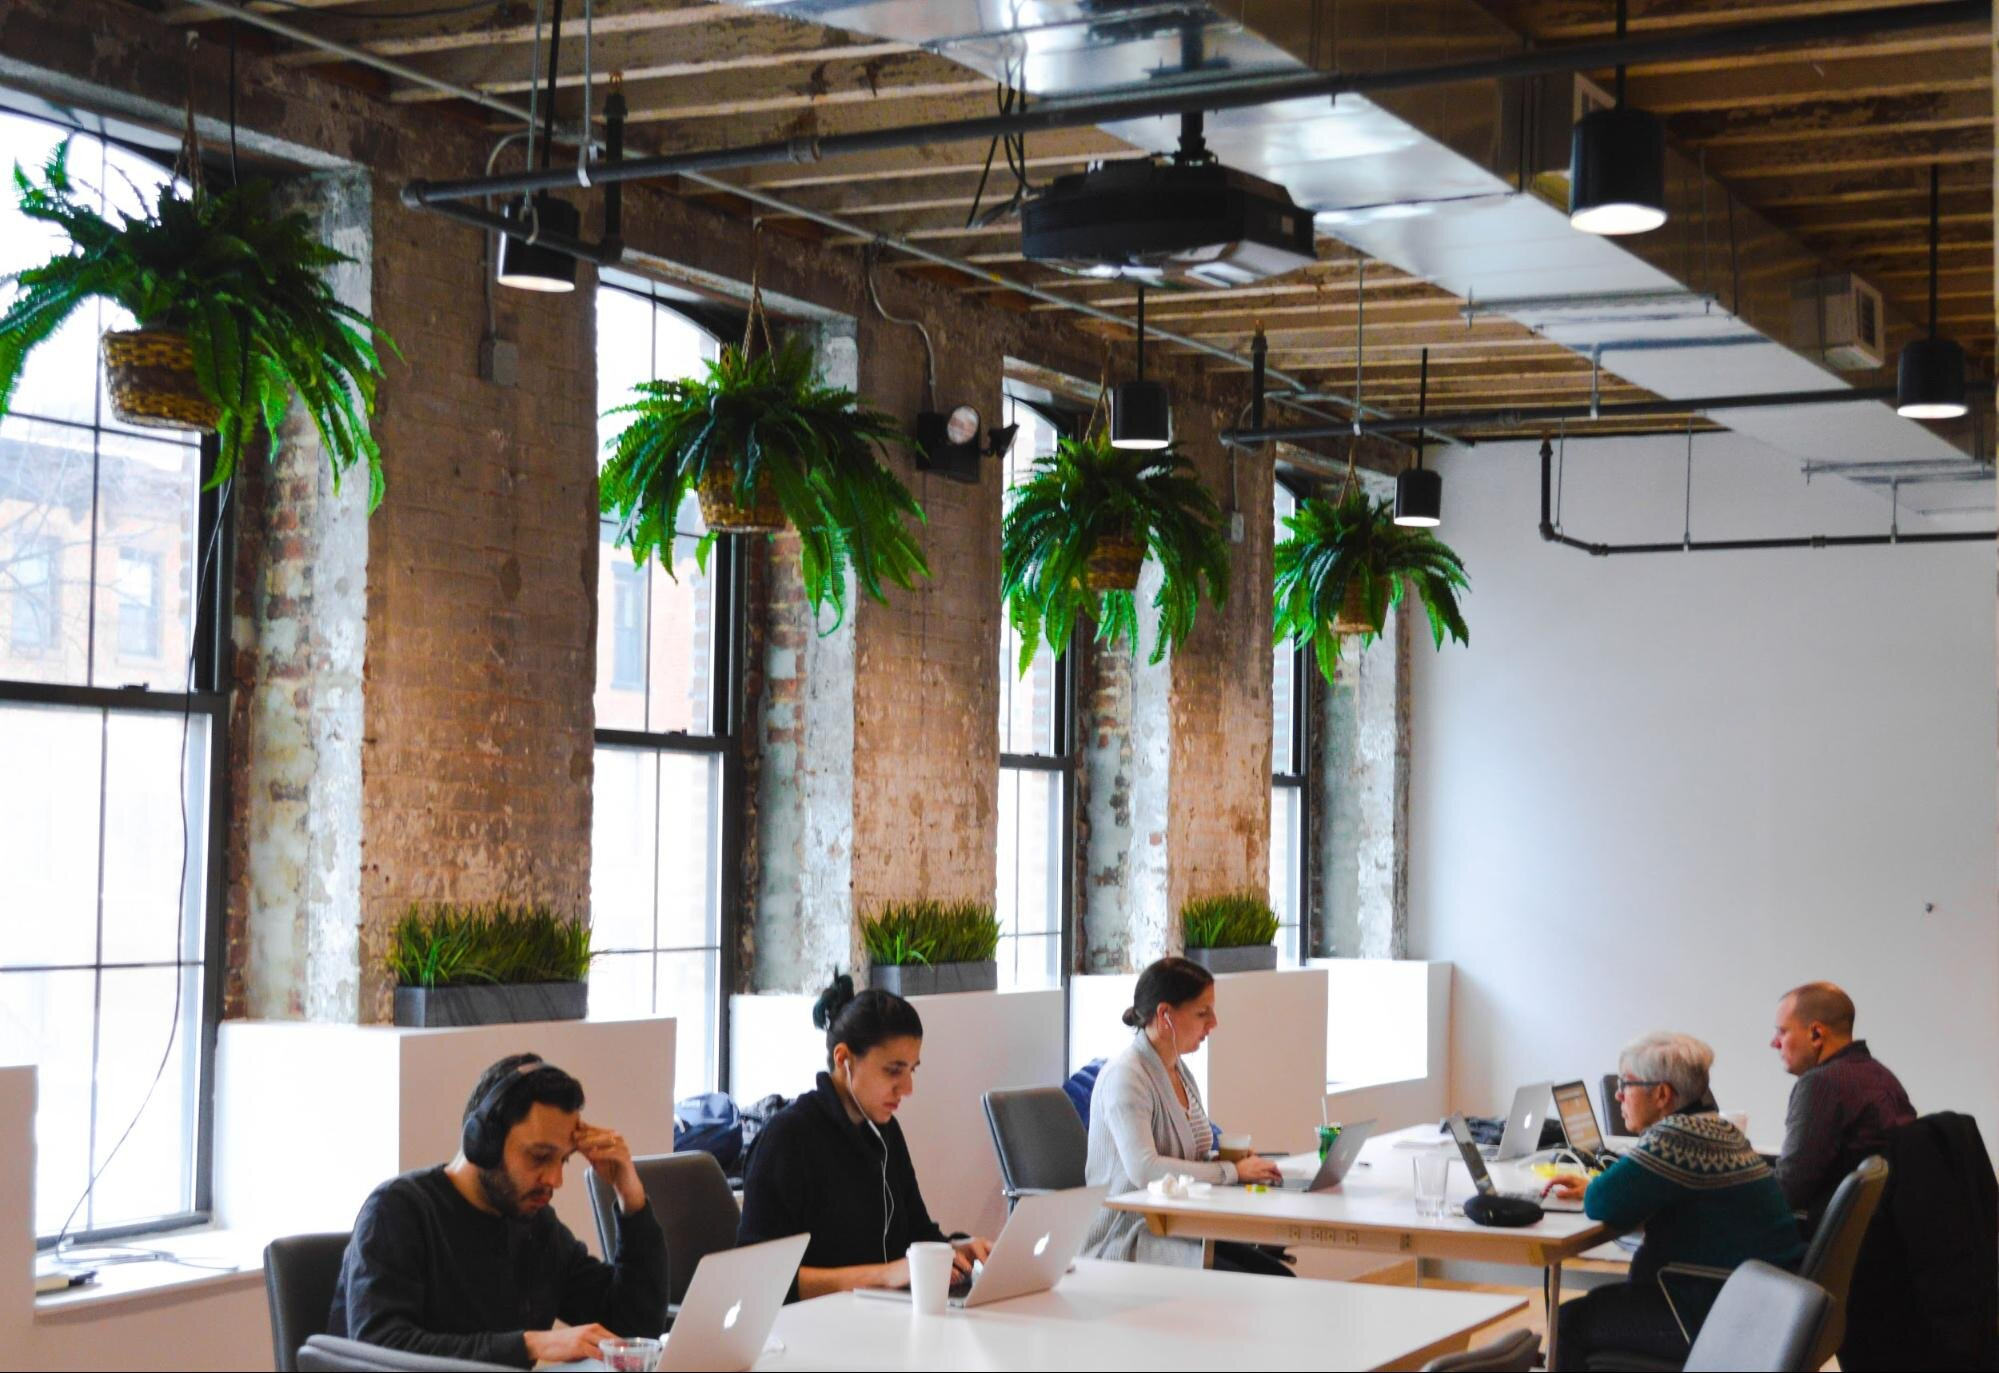 company culture at Bond Collective coworking space